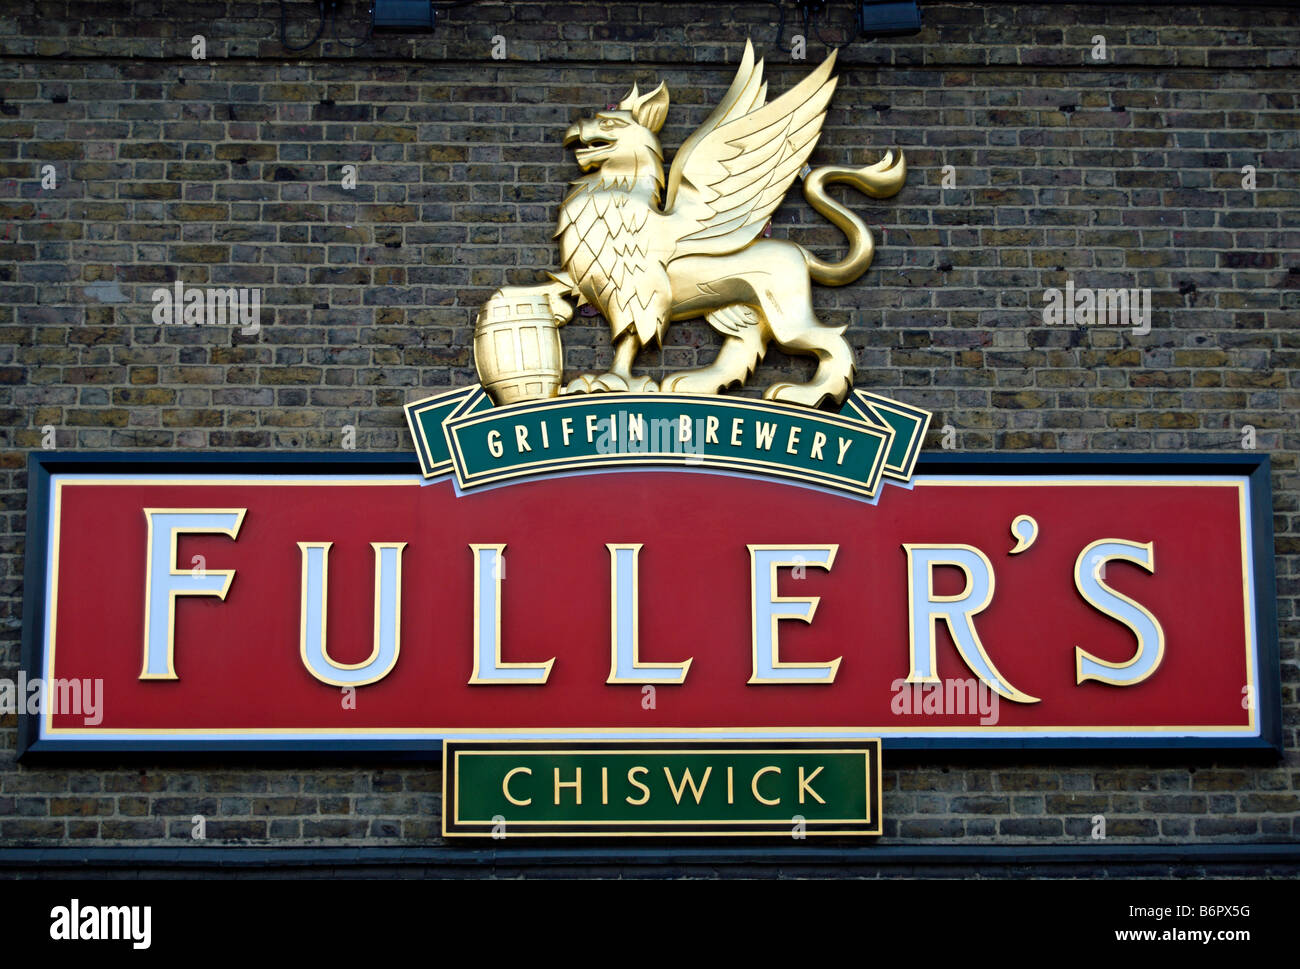 logo of fuller's griffin brewery in chiswick, west london, england - Stock Image